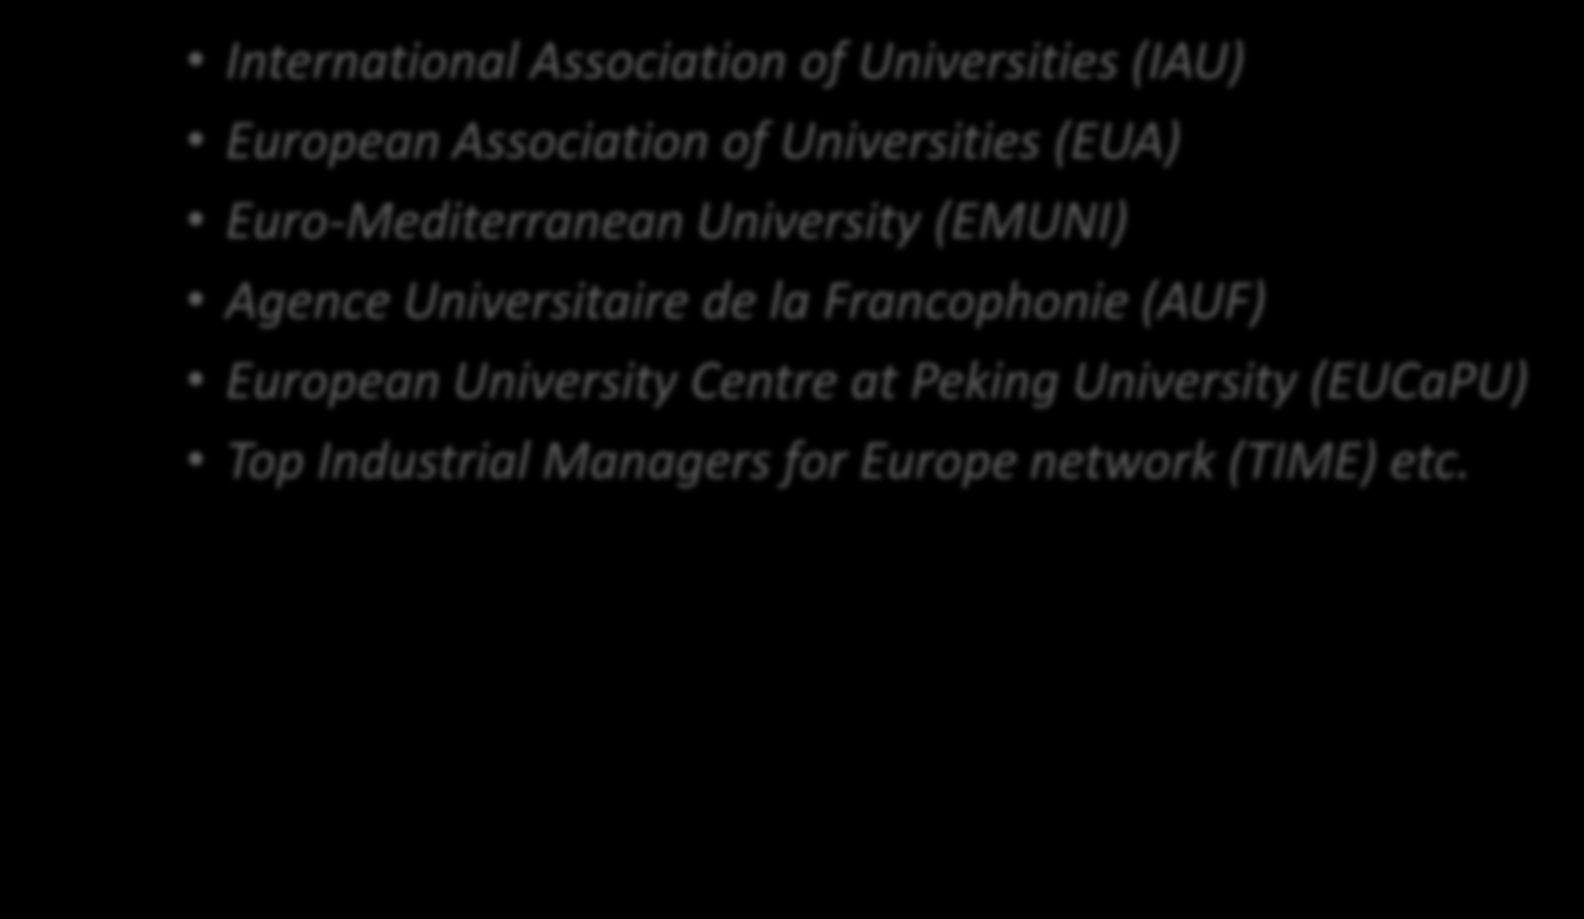 Participation in International Organizations, Associations and University Networks The international standing of Aristotle University of Thessaloniki is strengthened by its active participation in 41